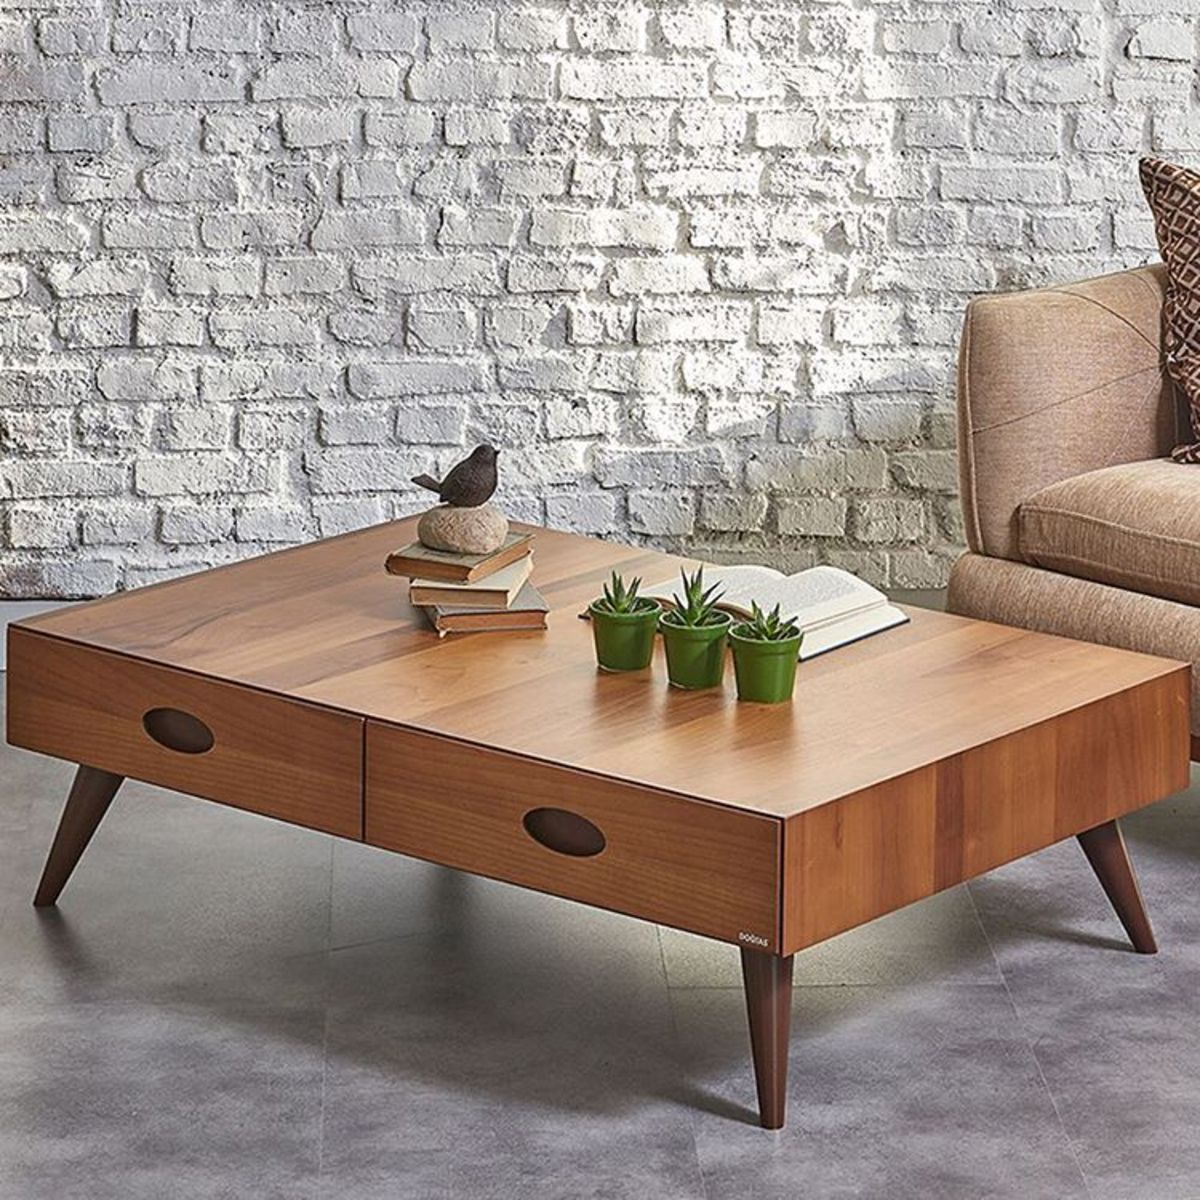 Decorate your home with verona coffee table interior designer decorate your home with verona coffee table interior designer design furniture geotapseo Image collections